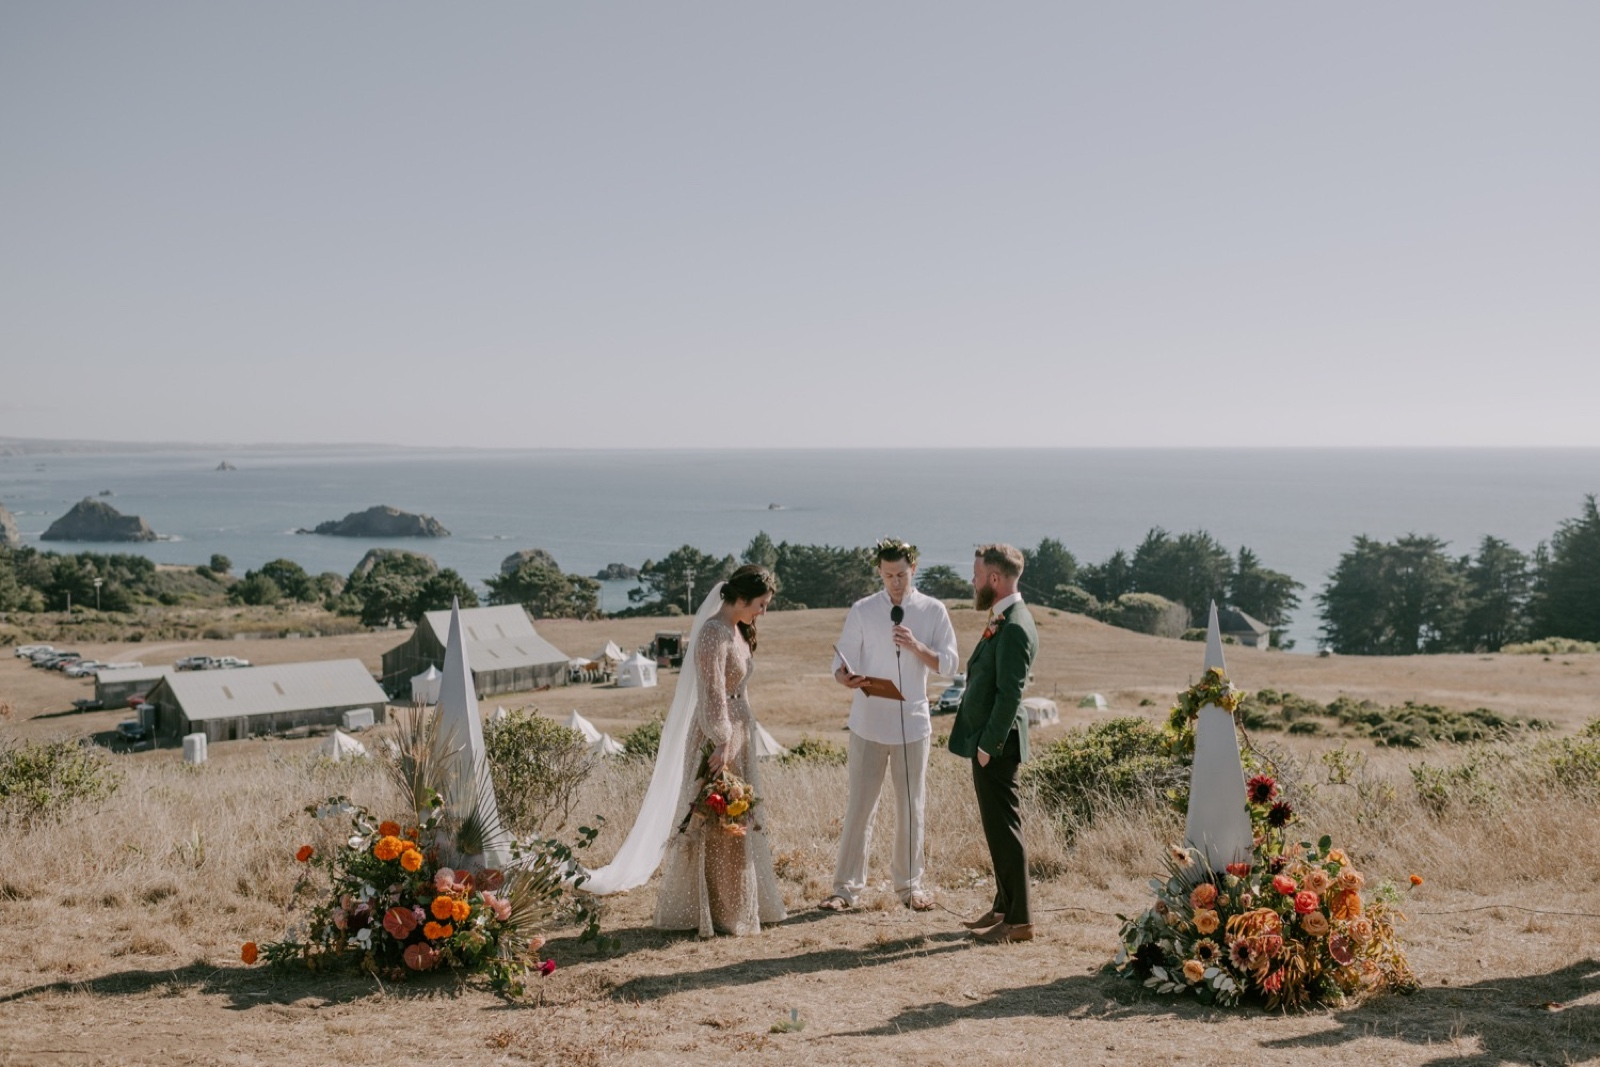 Mendocino_Wedding_Cuffeys_Cove080.JPG